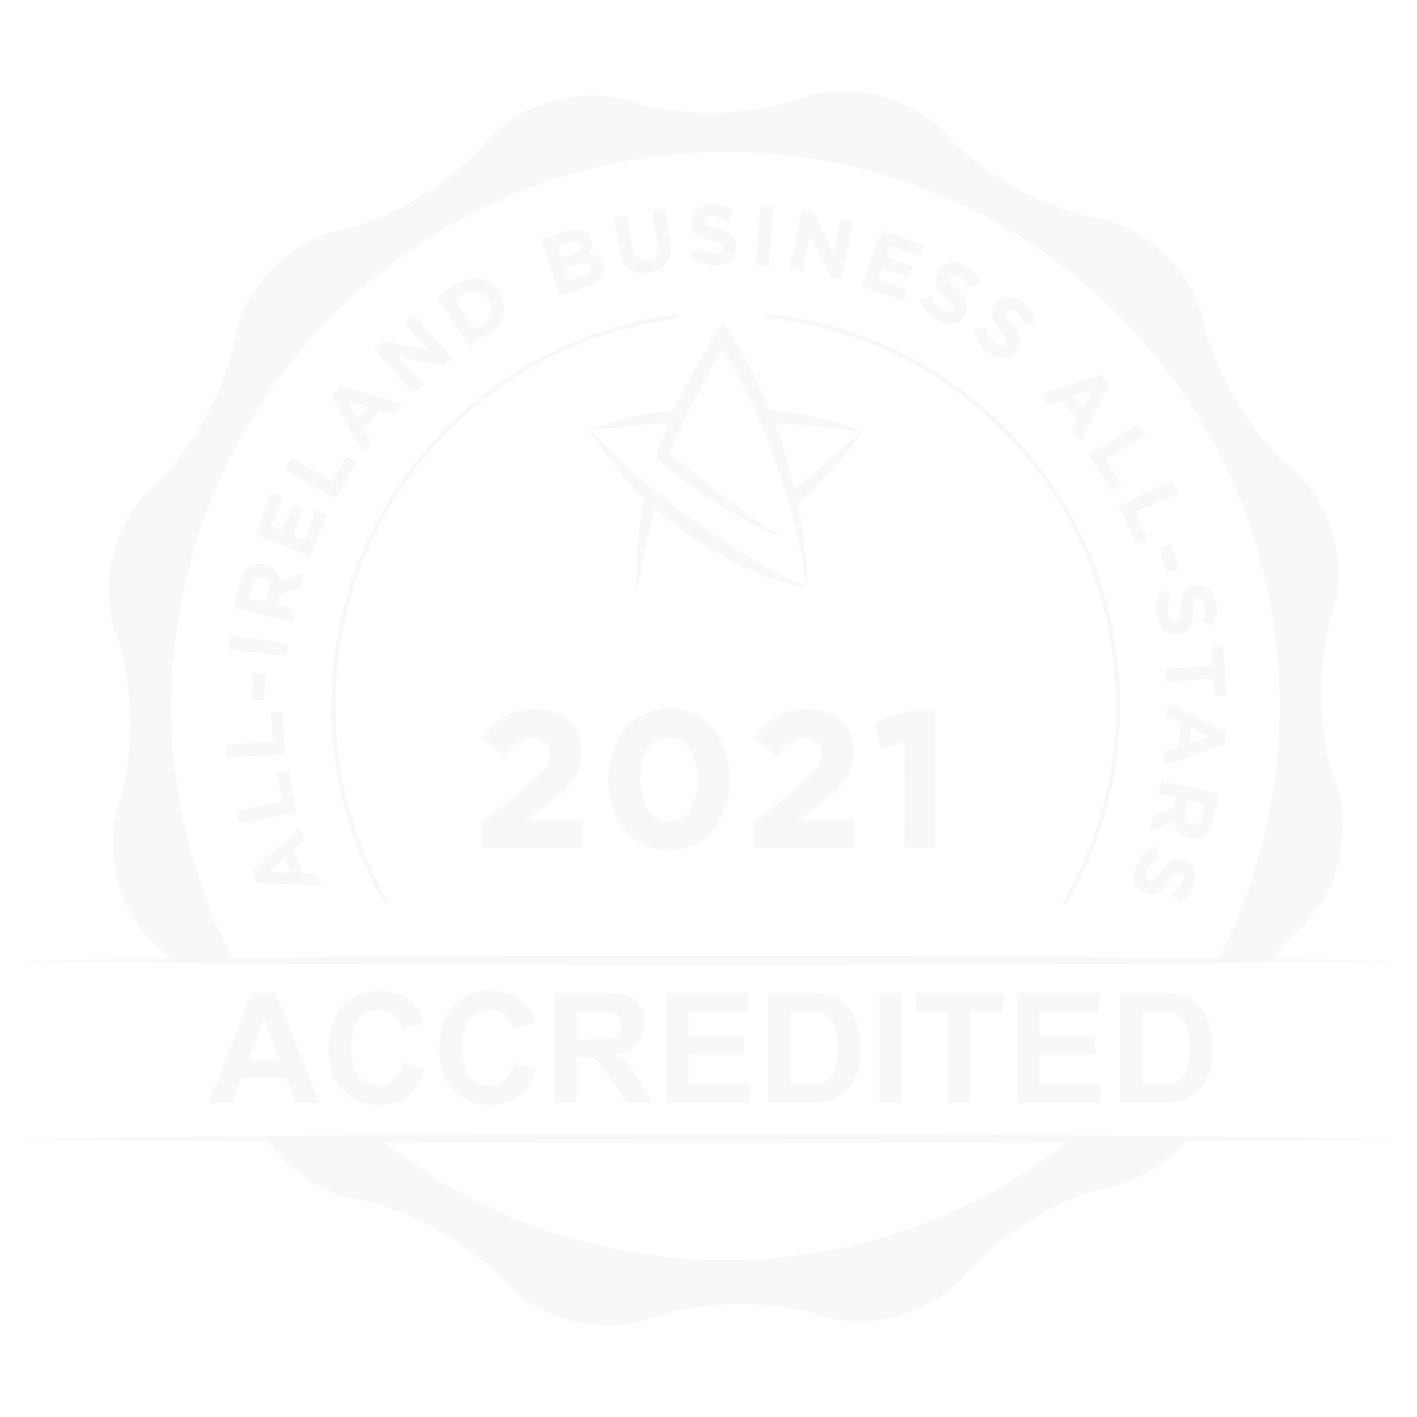 All-Ireland Business Foundation - Business All-Star Accredited